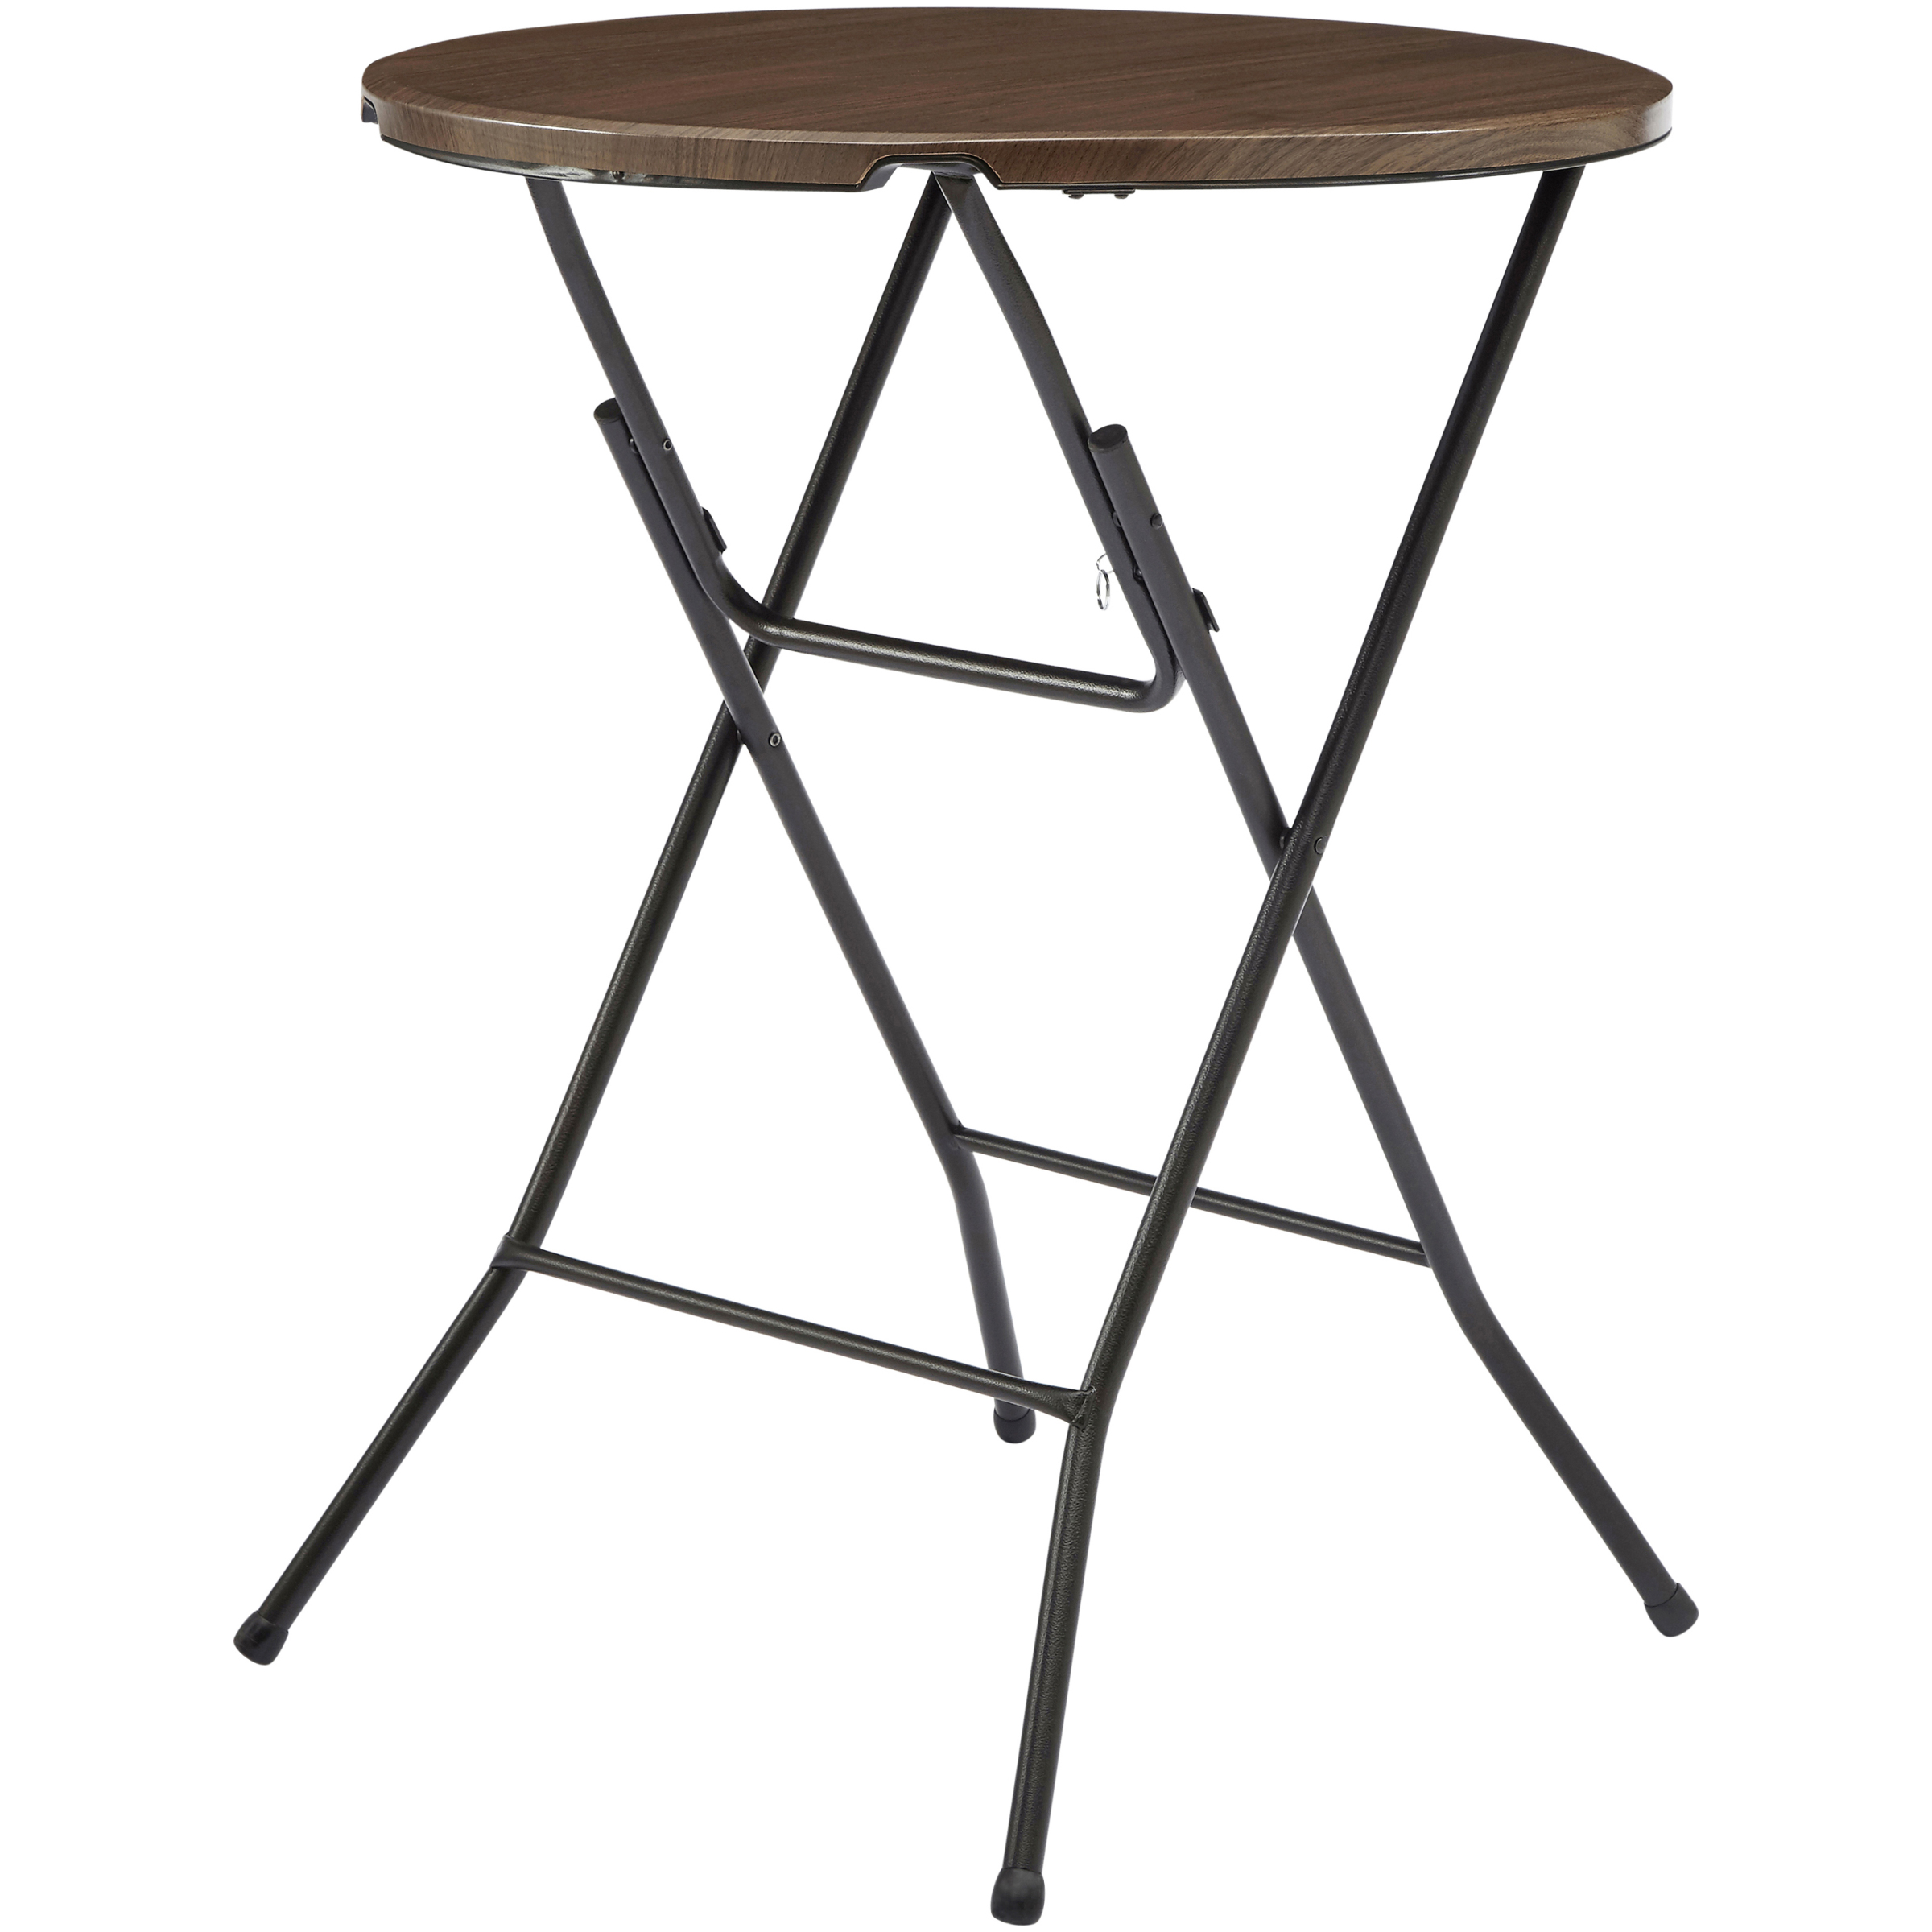 mainstays round high top folding table walnut low height accent wrought iron patio furniture battery pack for lamp chest entryway wooden side pub outdoor serving with storage